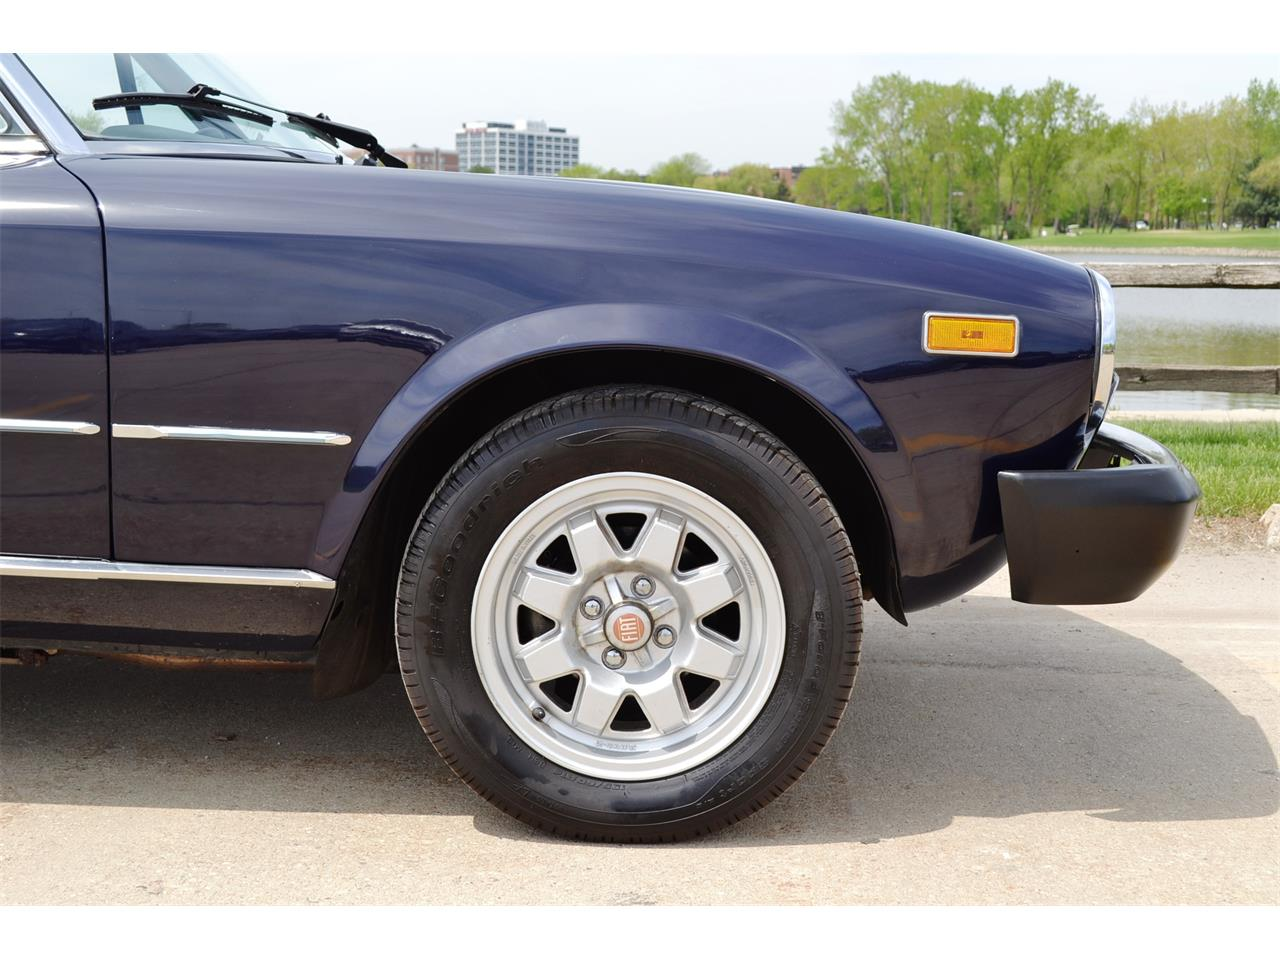 1981 Fiat Spider for sale in Barrington, IL – photo 14